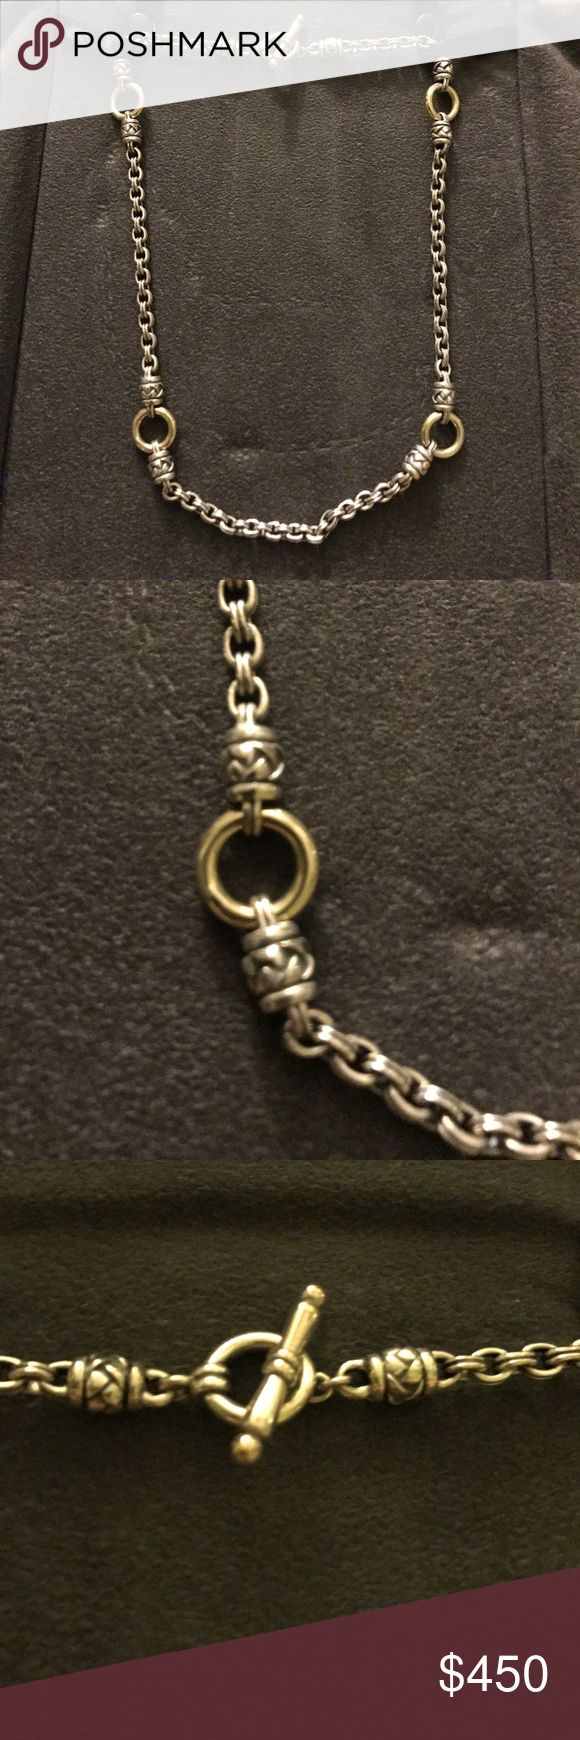 """Scott Kay basket weave 17"""" necklace Scott Kay basket weave necklace. Silver with 18k gold accents and toggle closure. Worn only once in excellent condition! Scott Kay Jewelry Necklaces"""